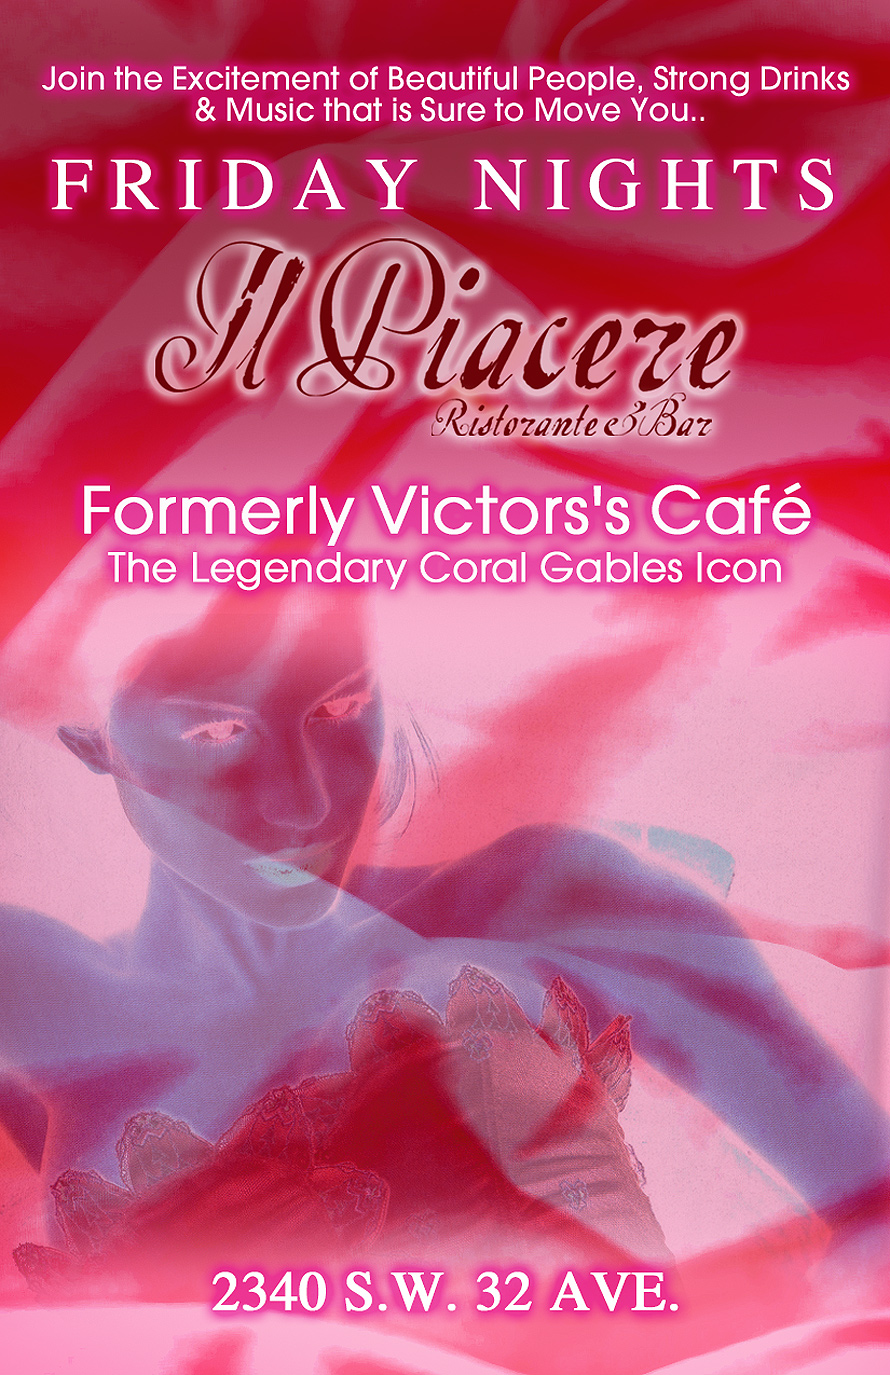 Friday Nights at Il Piacere